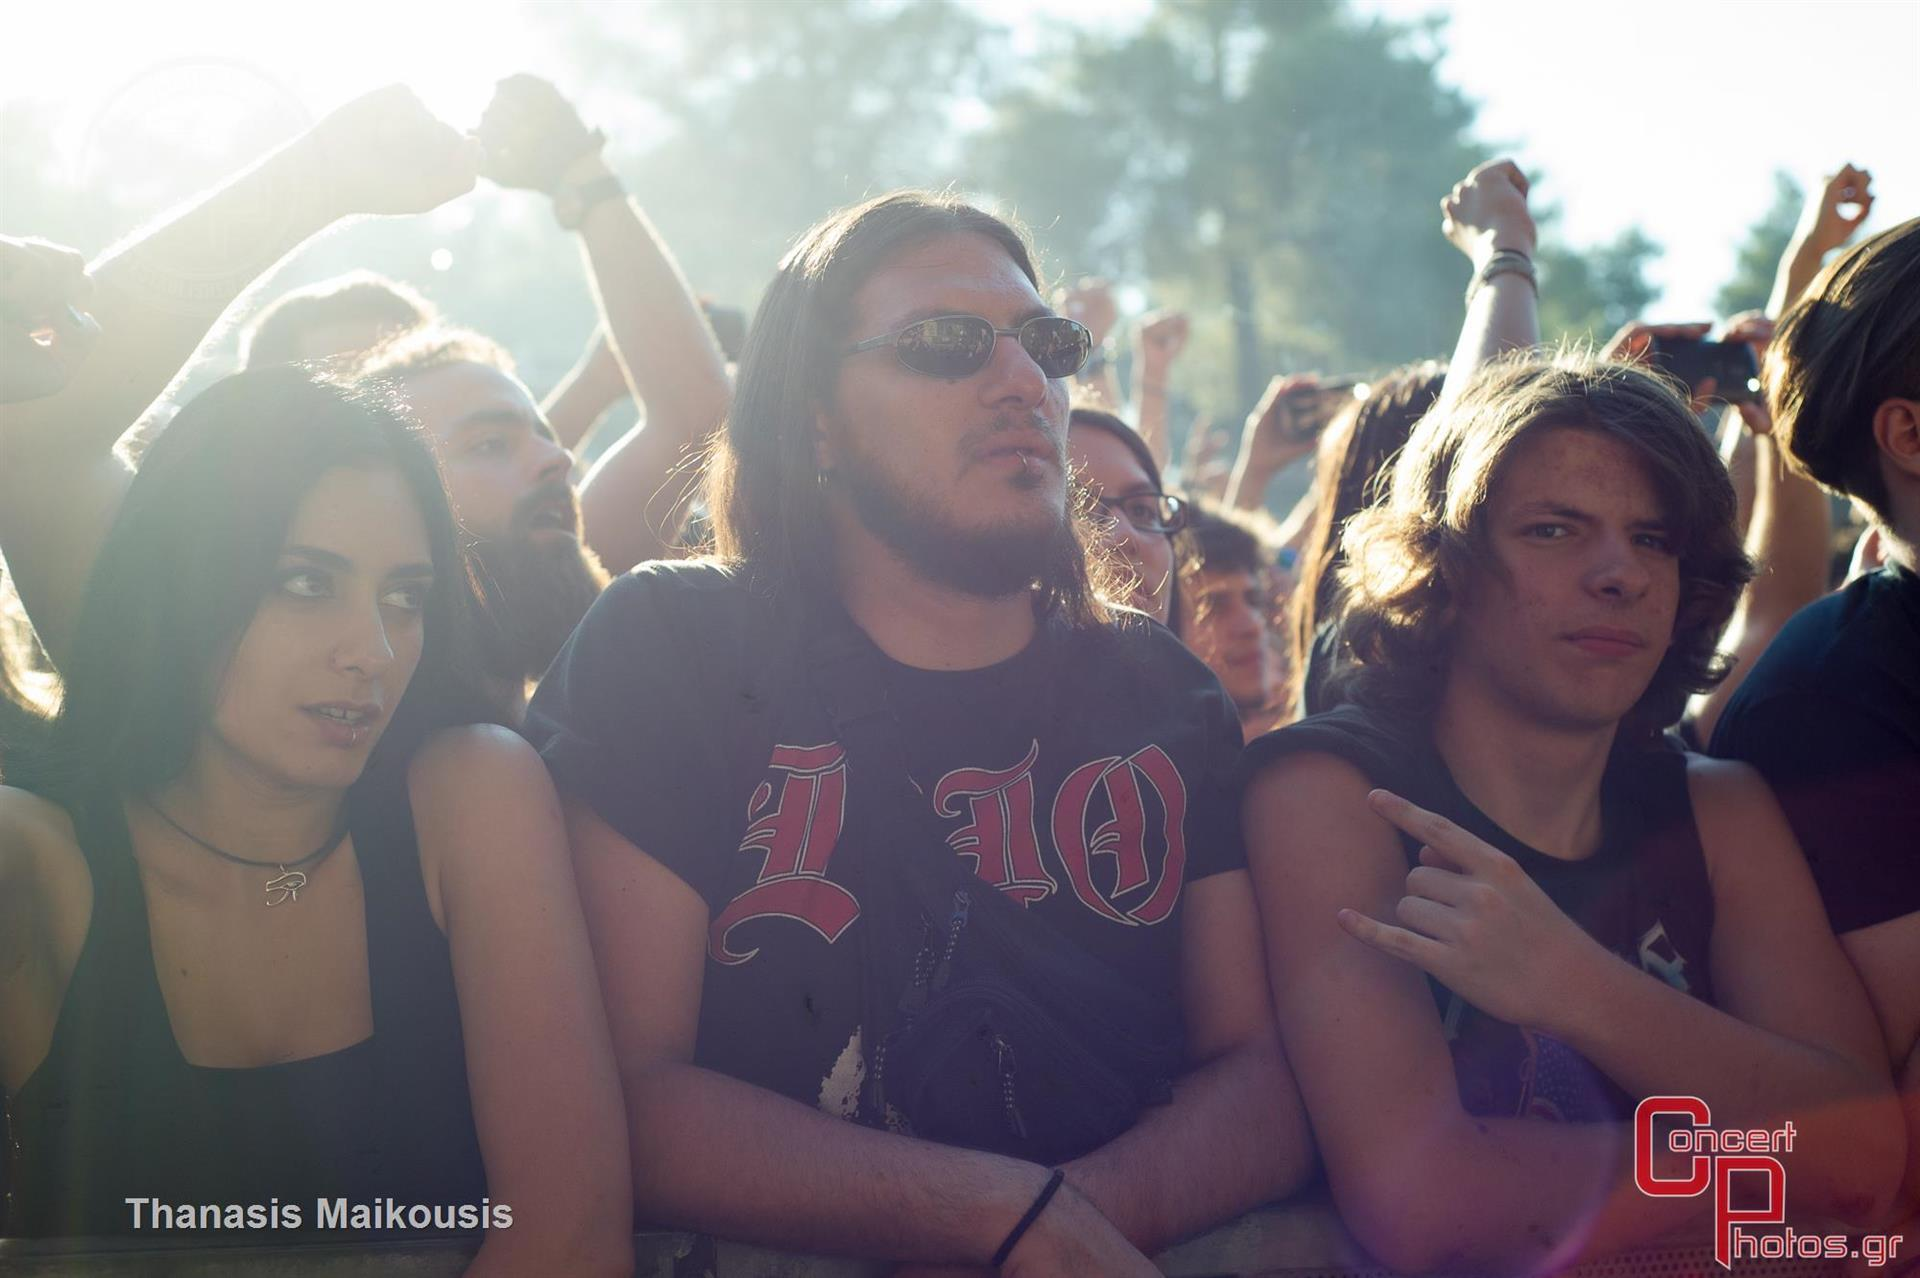 Rockwave 2015 - Day 3-Rockwave 2015 - Day 3 photographer: Thanasis Maikousis - ConcertPhotos - 20150704_1802_00